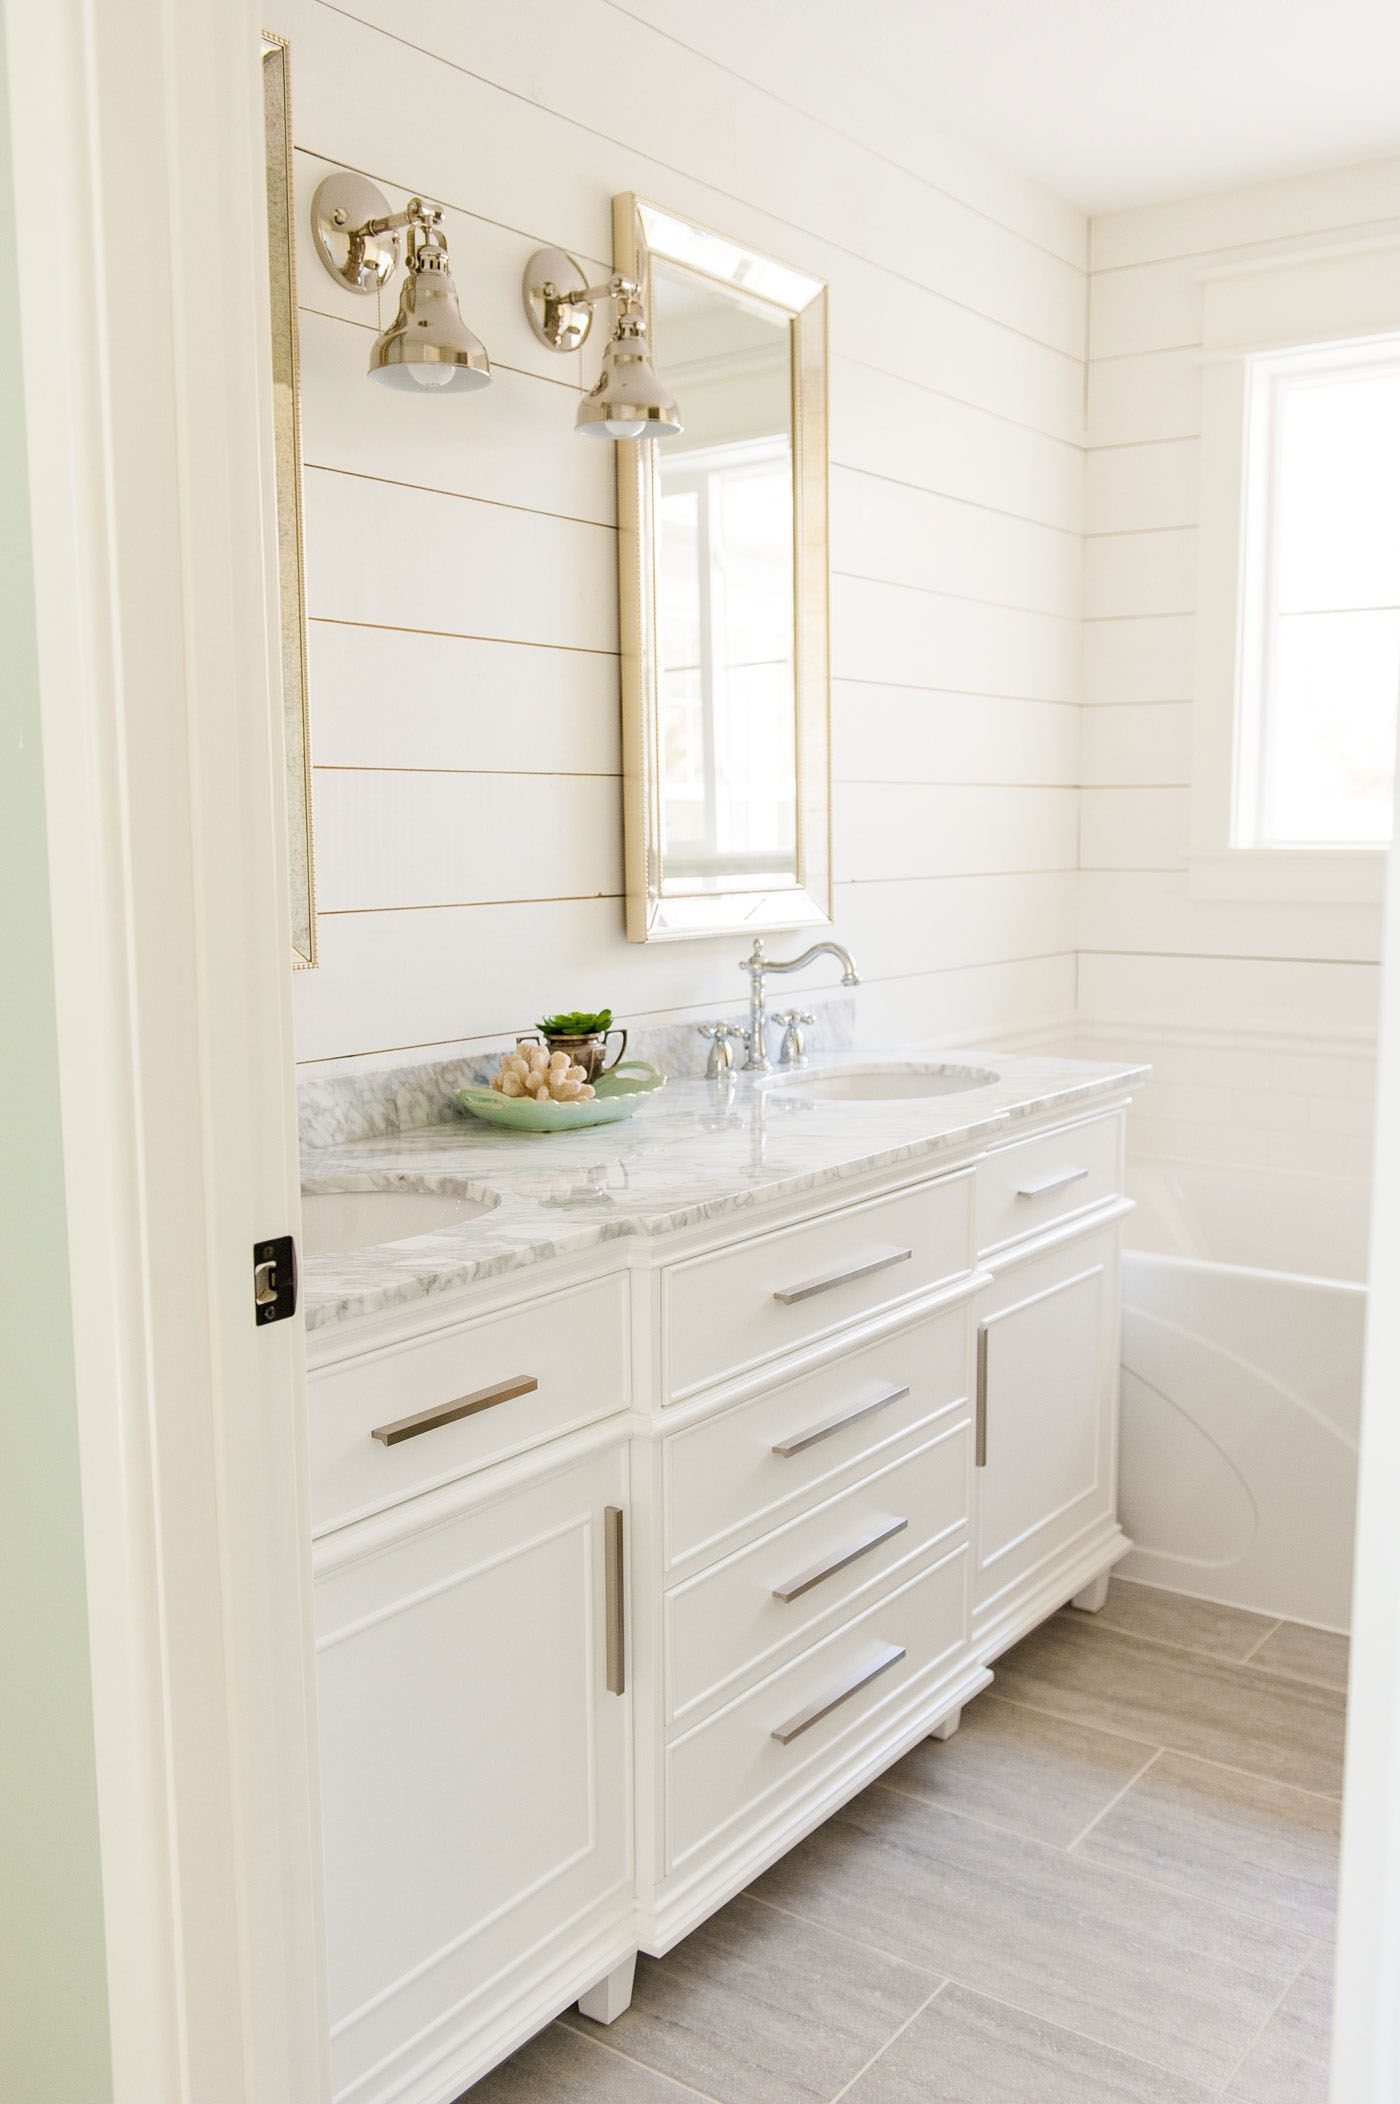 The Ultimate Guide To Buying A Bathroom Vanity Bathroom Vanity Designs Double Vanity Bathroom Master Bathroom Vanity